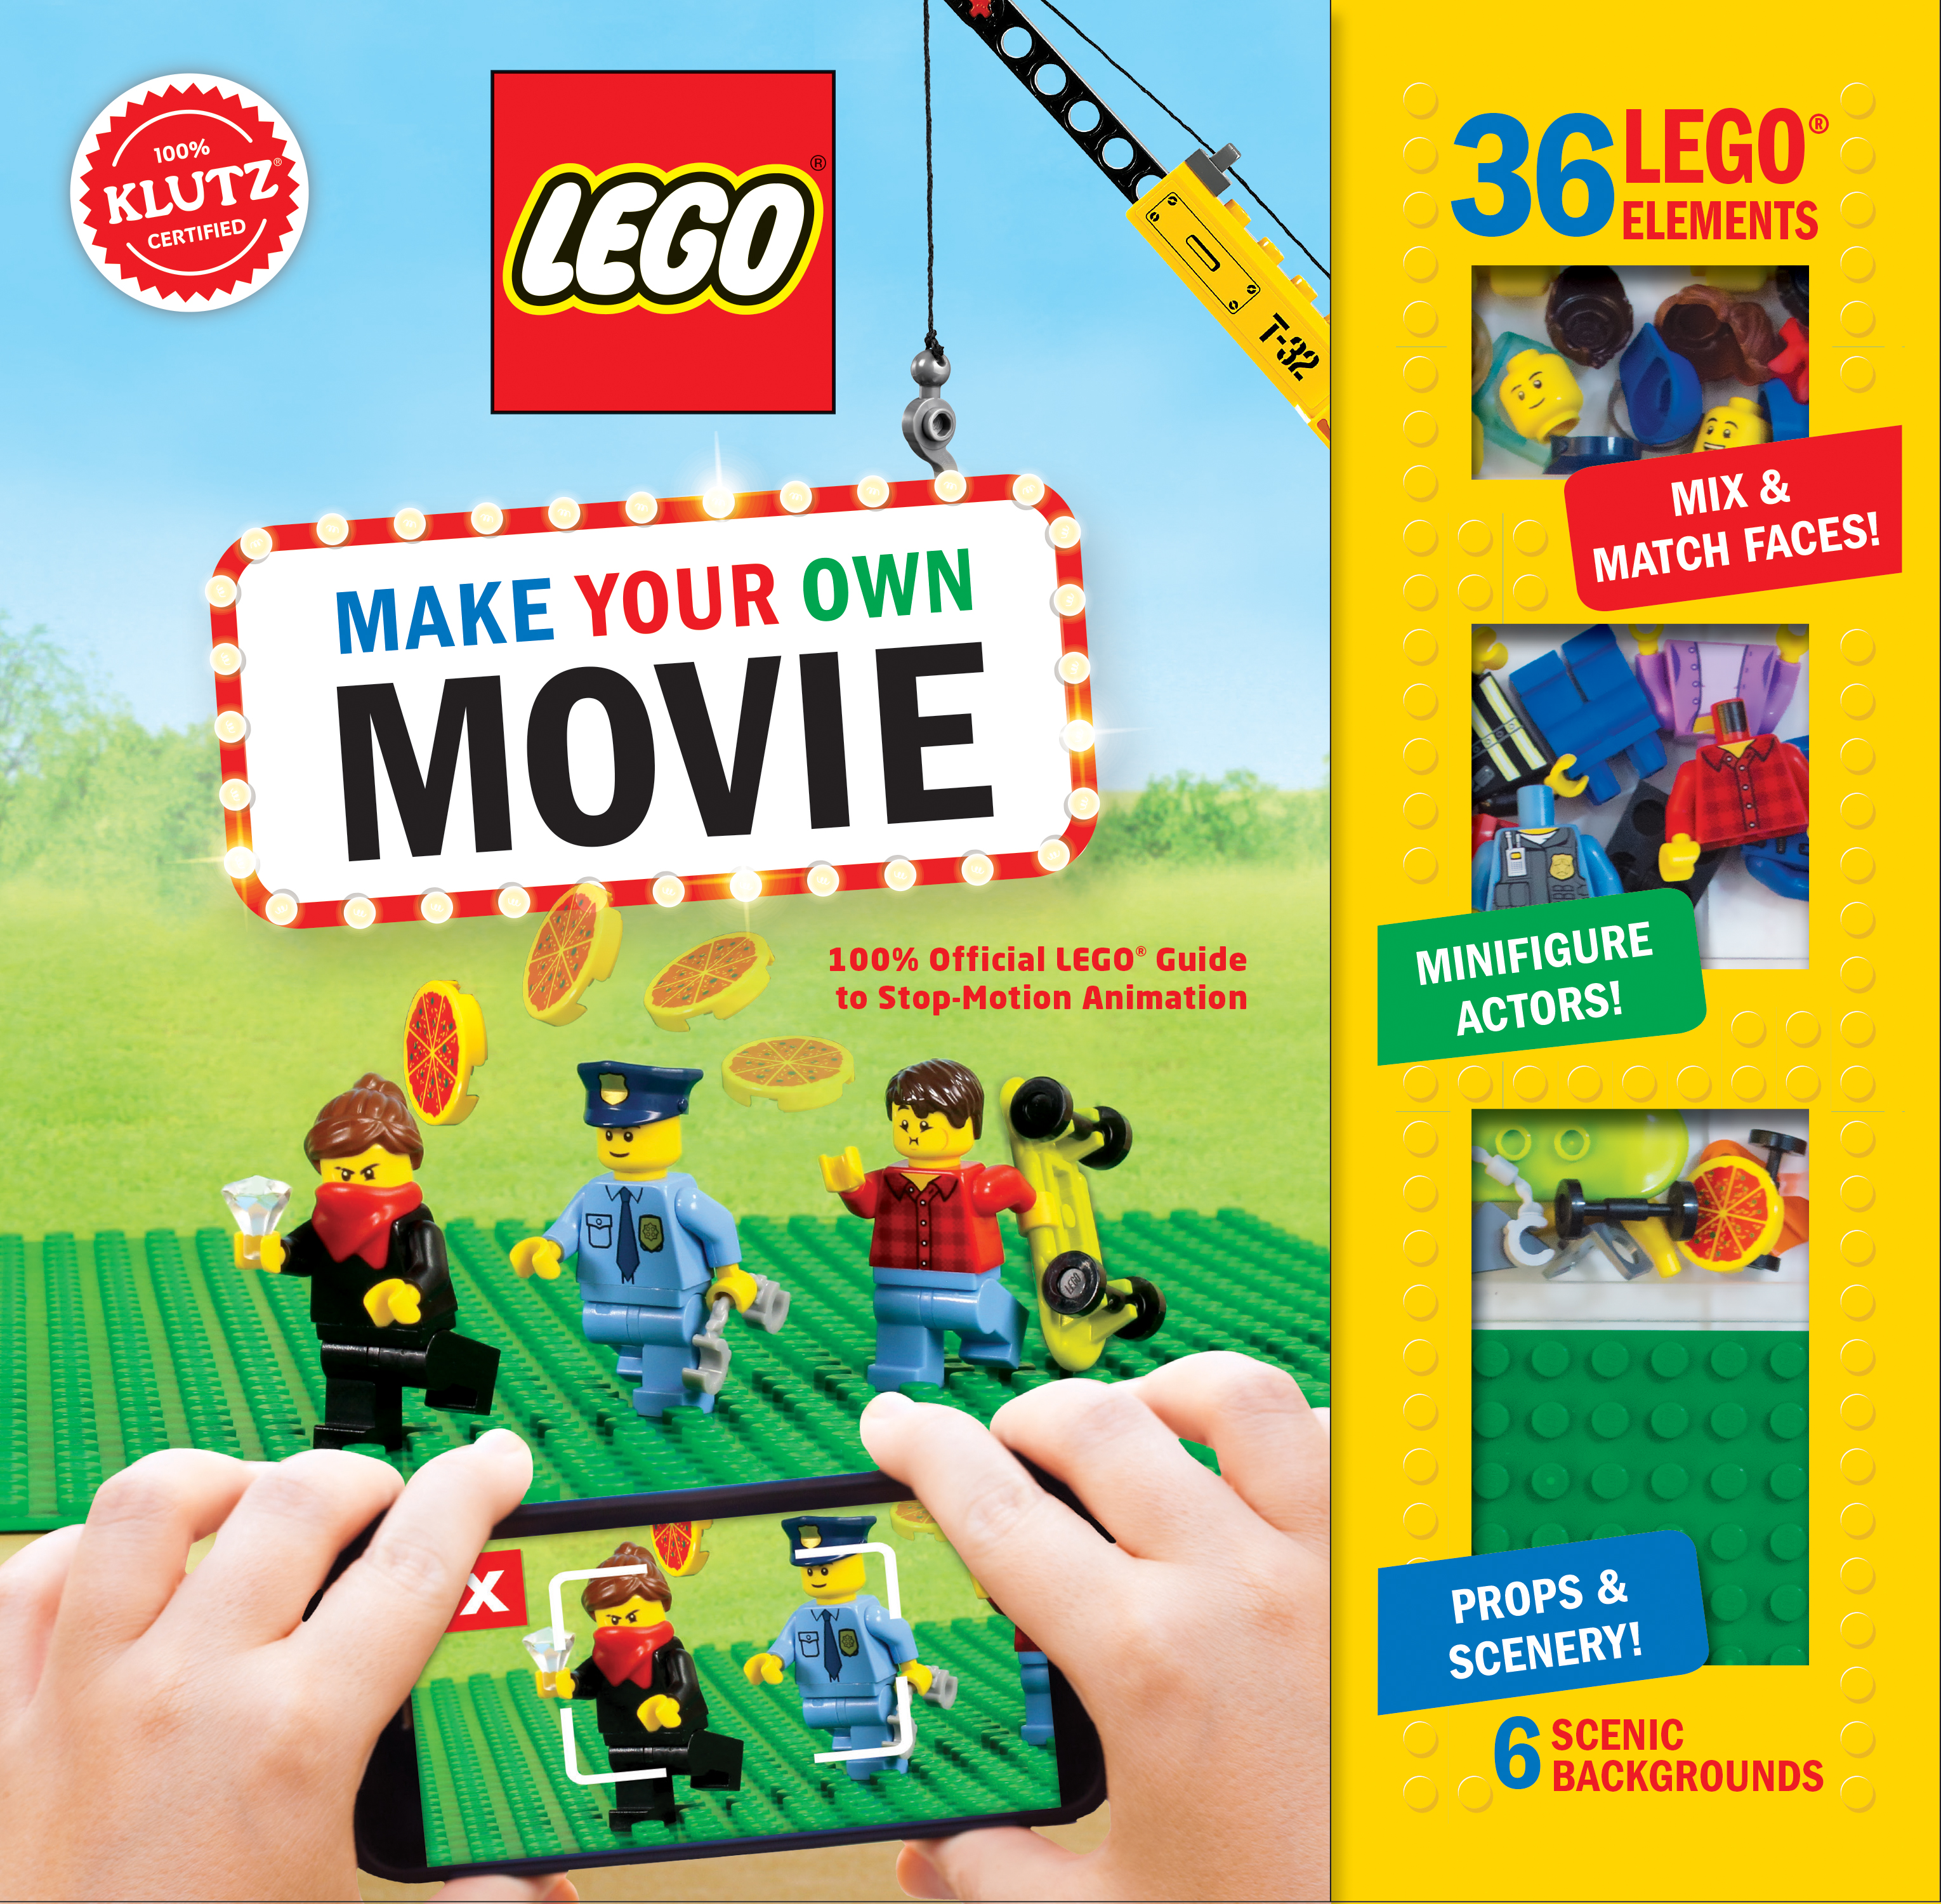 Upcoming Scholastic Klutz Lego Books The Brick Fan The